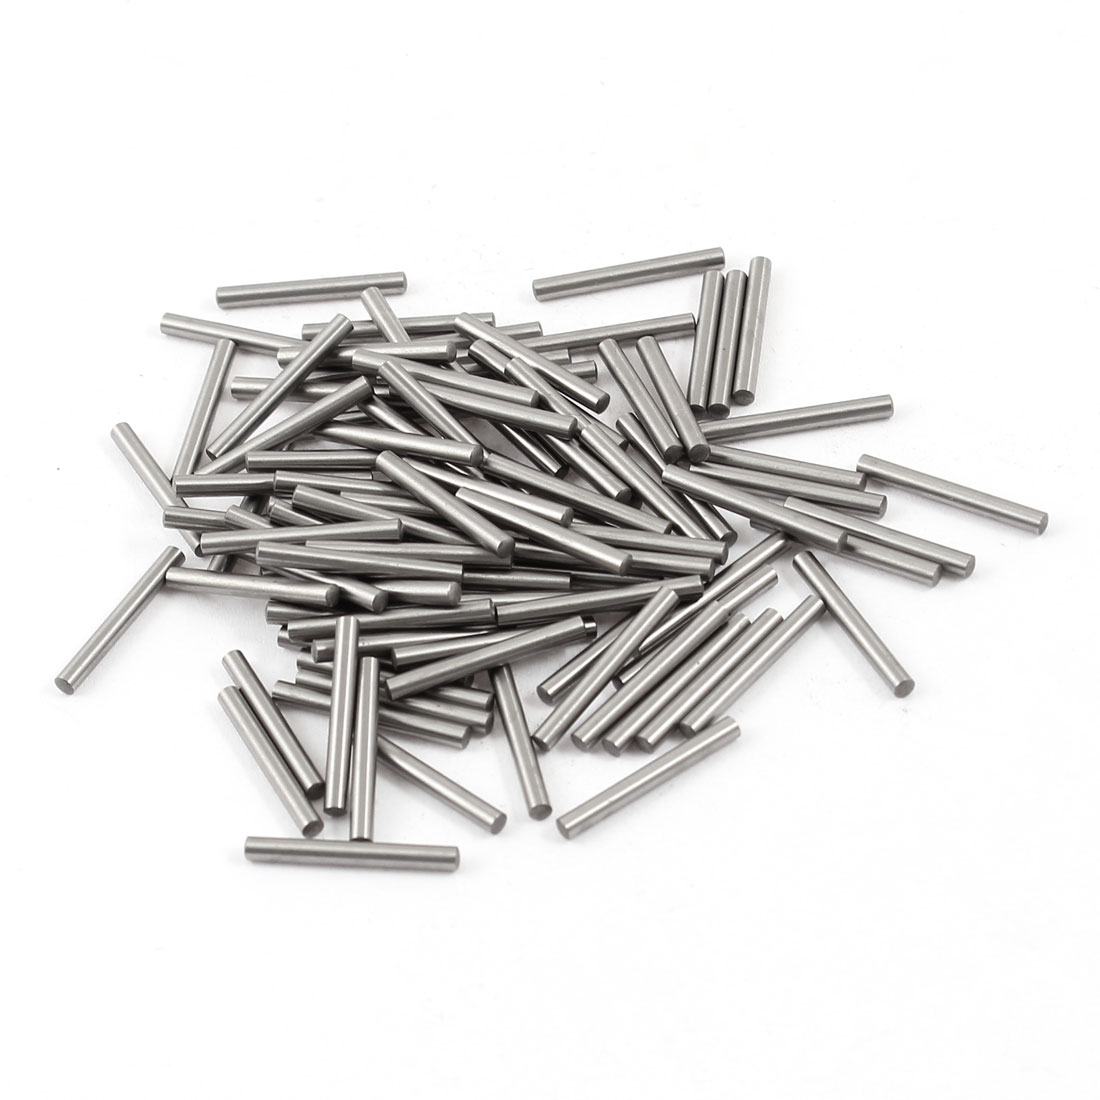 100 Pcs Stainless Steel 2.05mm x 18mm Parallel Dowel Pins Fasten Elements Silver Tone